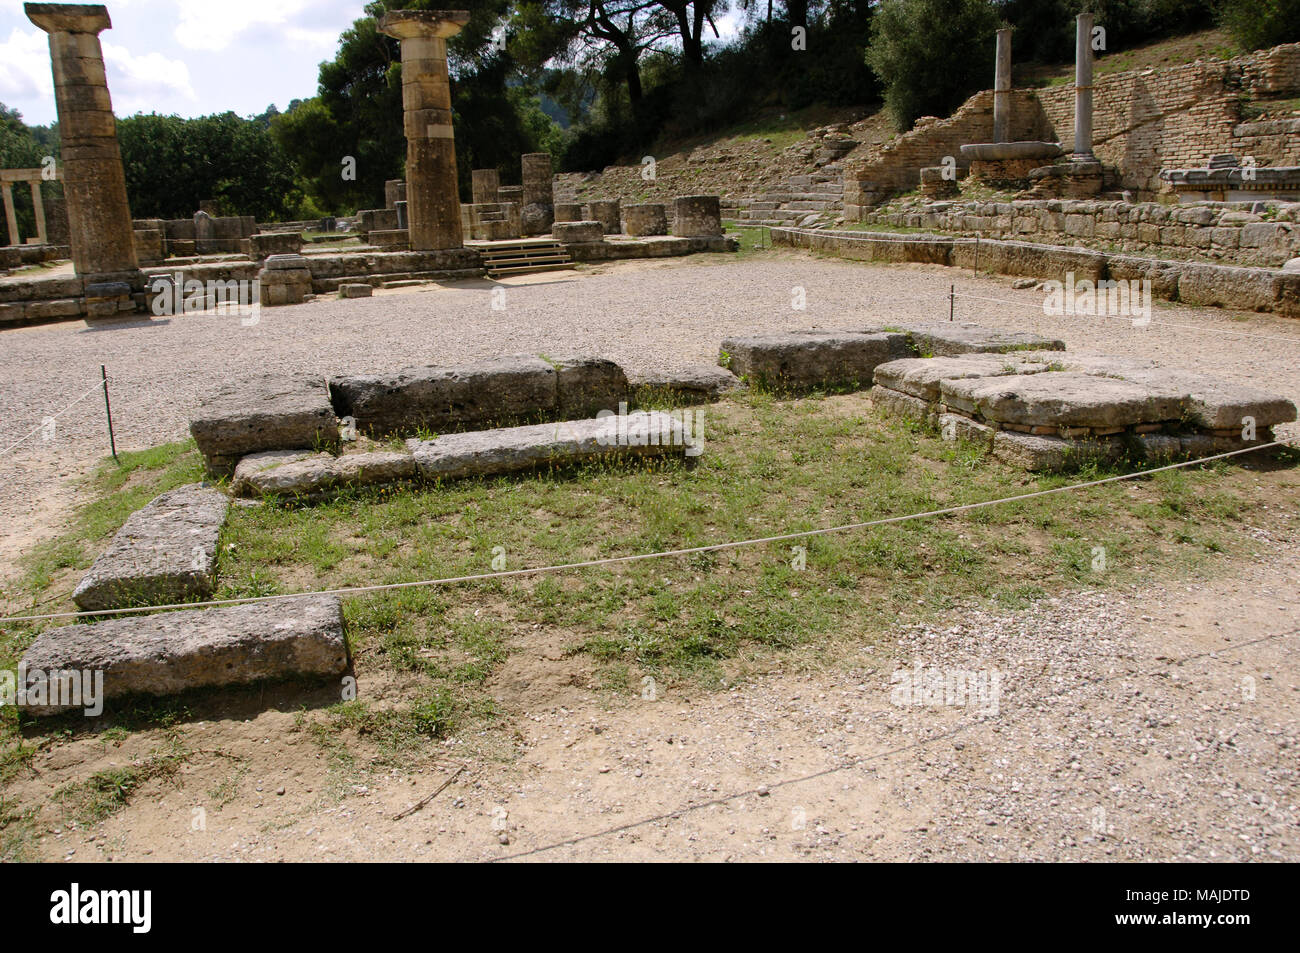 Olympia. Temple of Hera. It was built aound 600 BC. View of the altar. The torch of the Olympic flame is lit in its ruins since 1936. Elis region, Peloponnese, Greece. - Stock Image